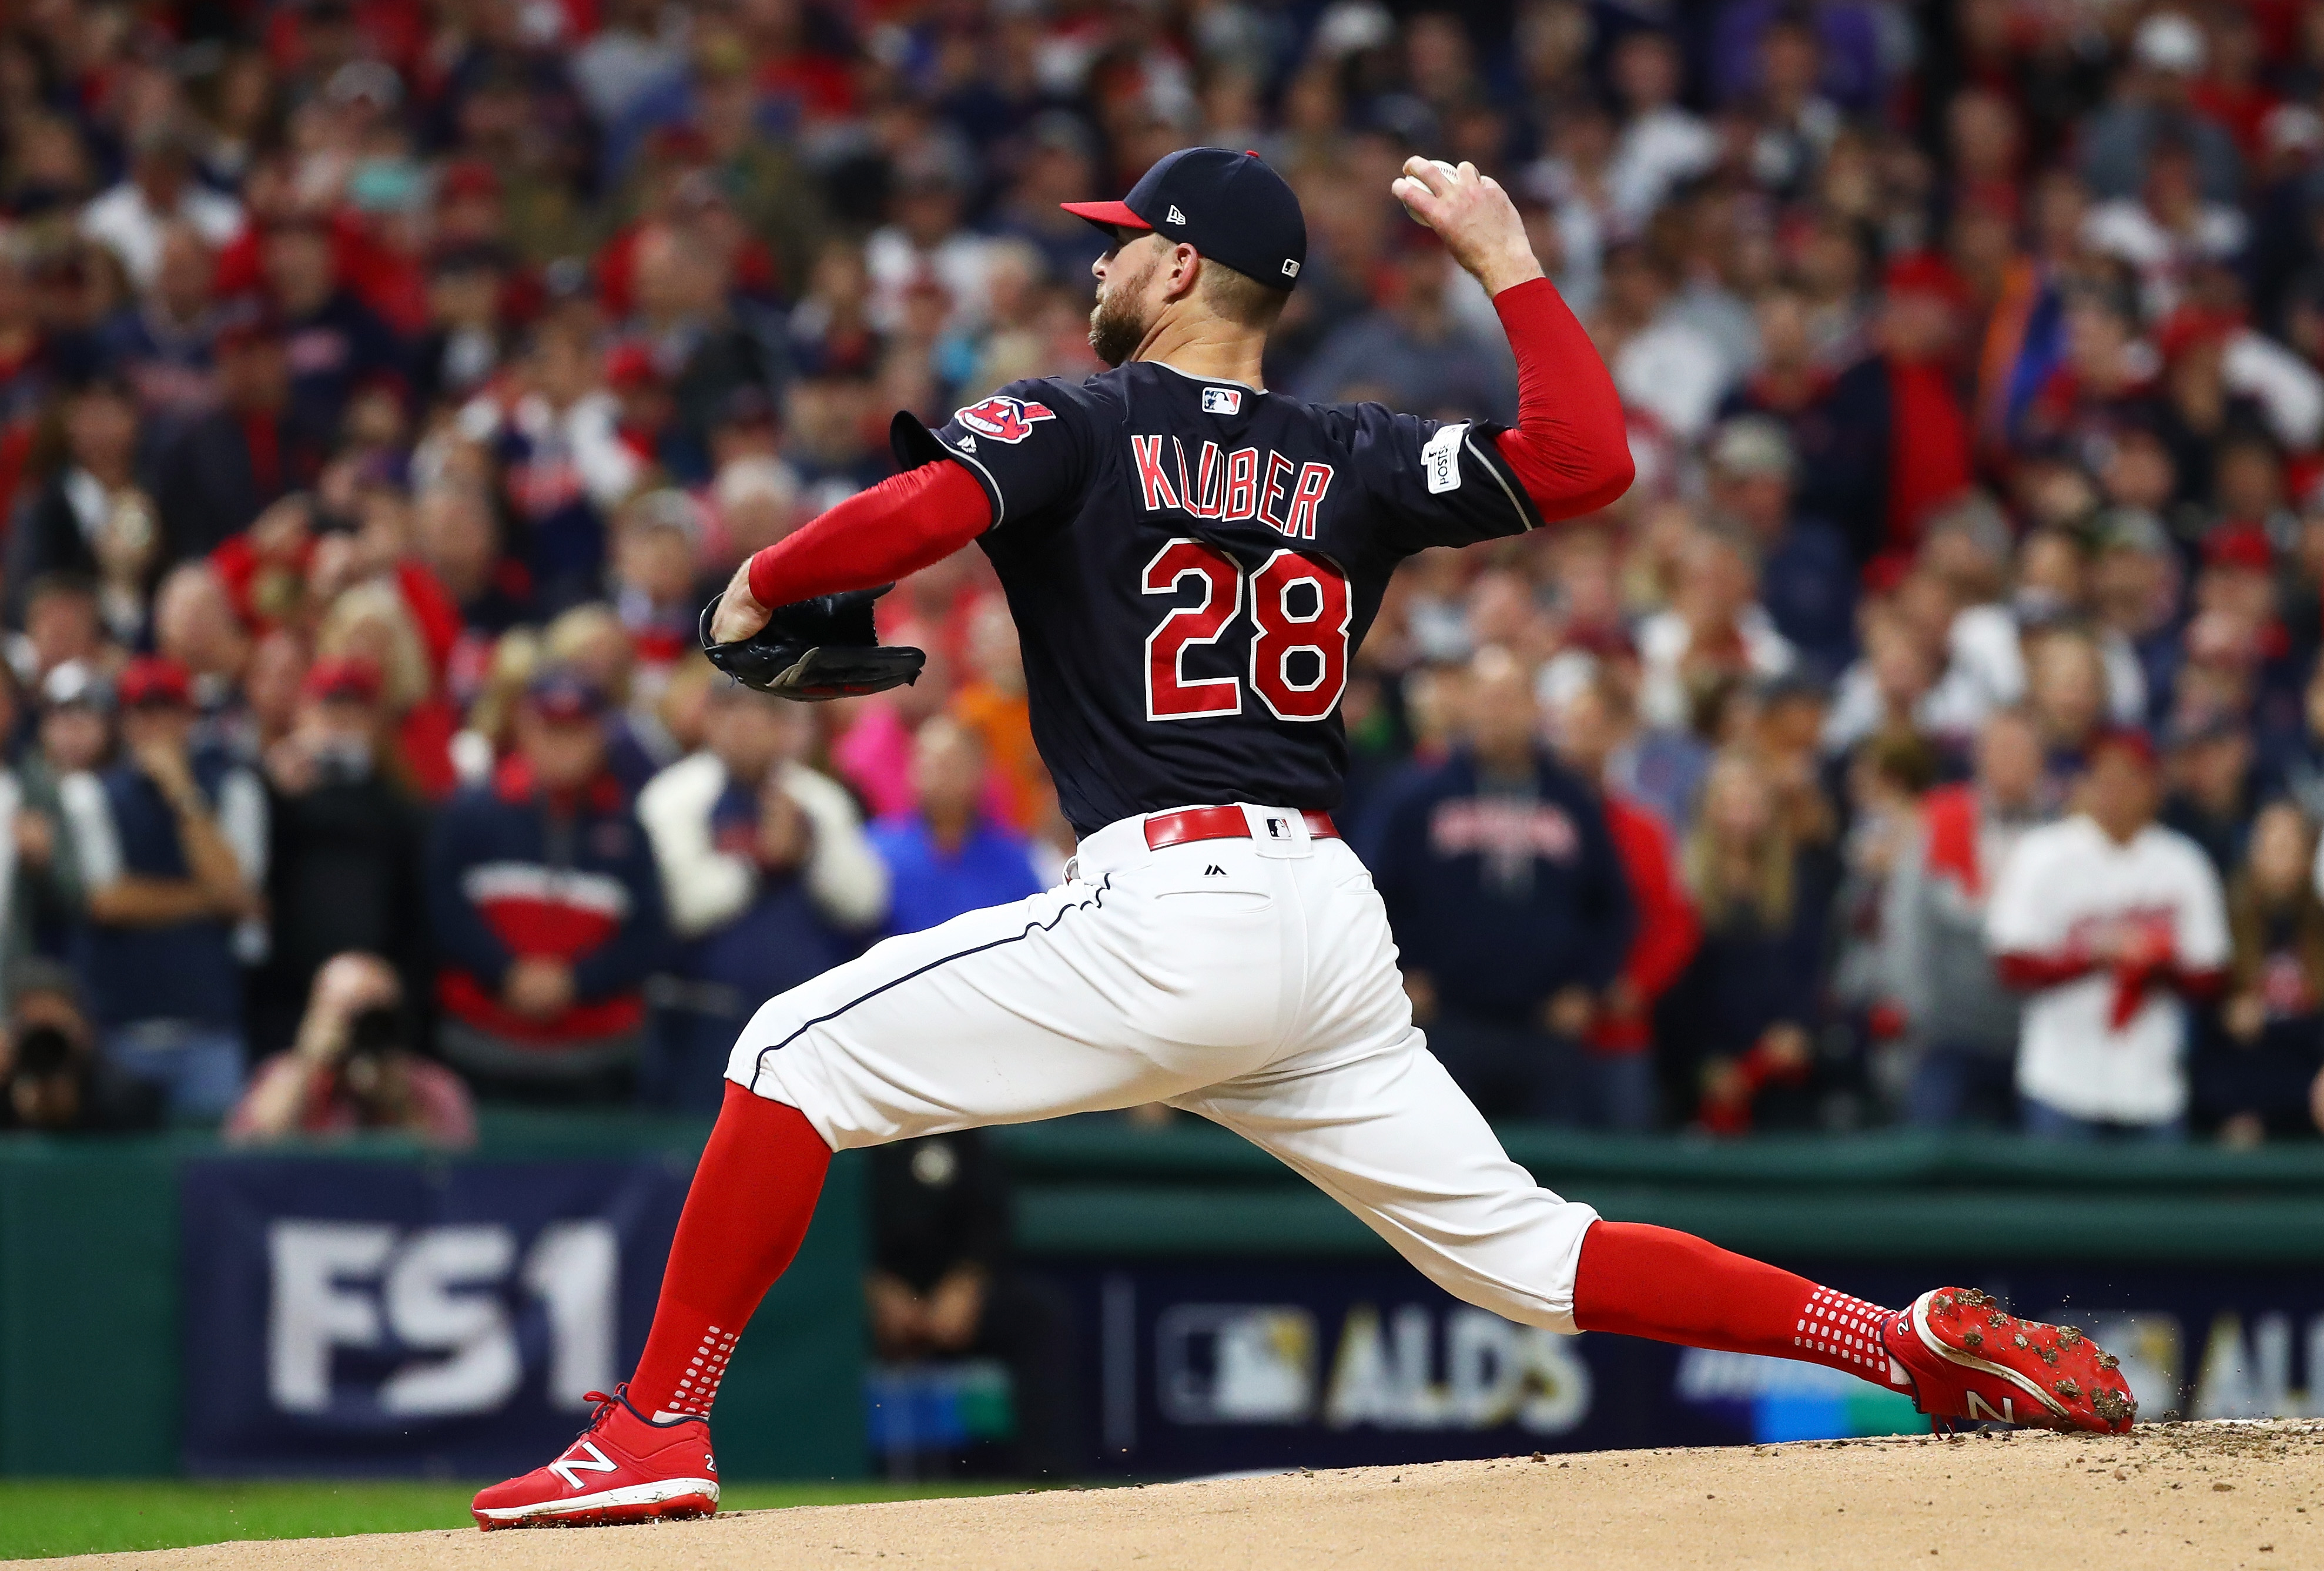 Cleveland Indians: Corey Kluber's Potential Road To